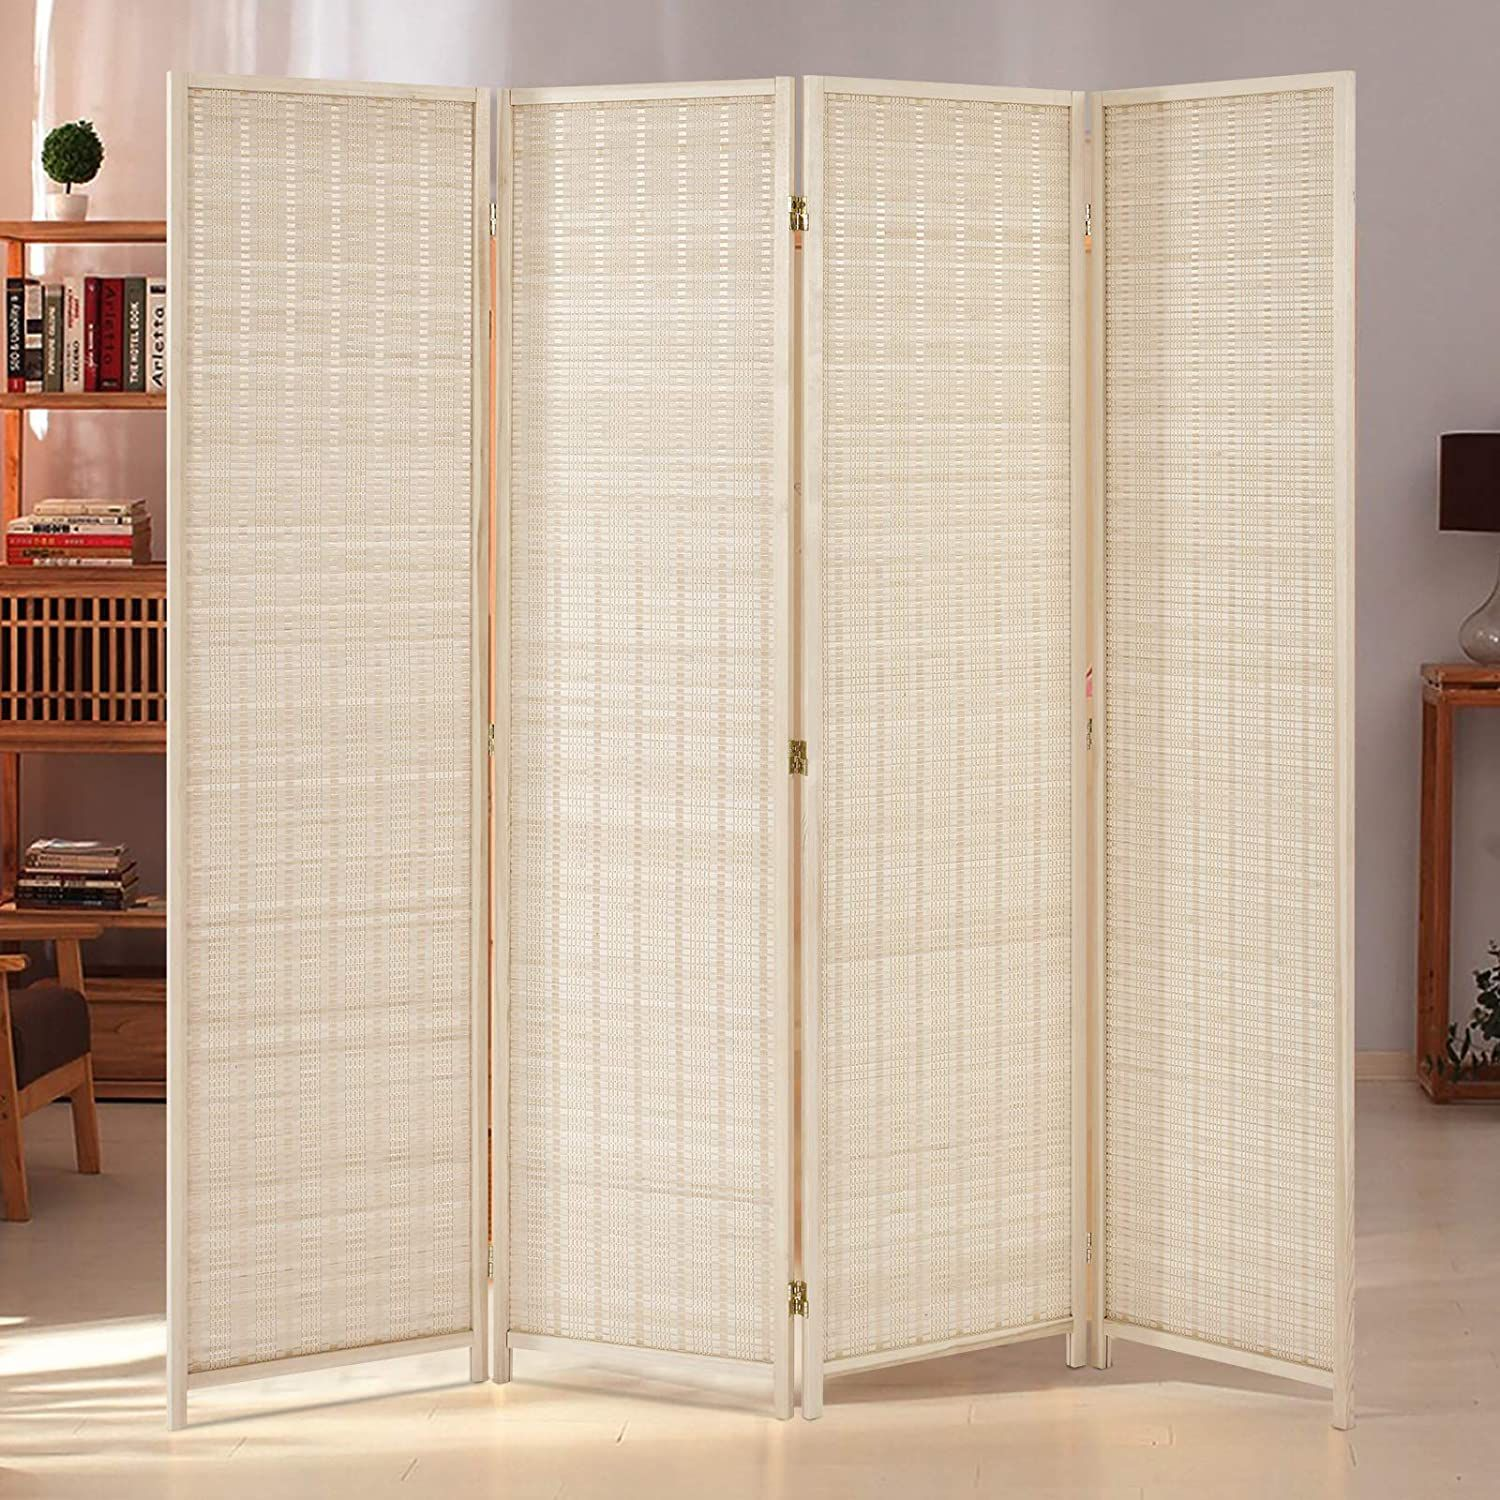 the 8 best room dividers of 2021